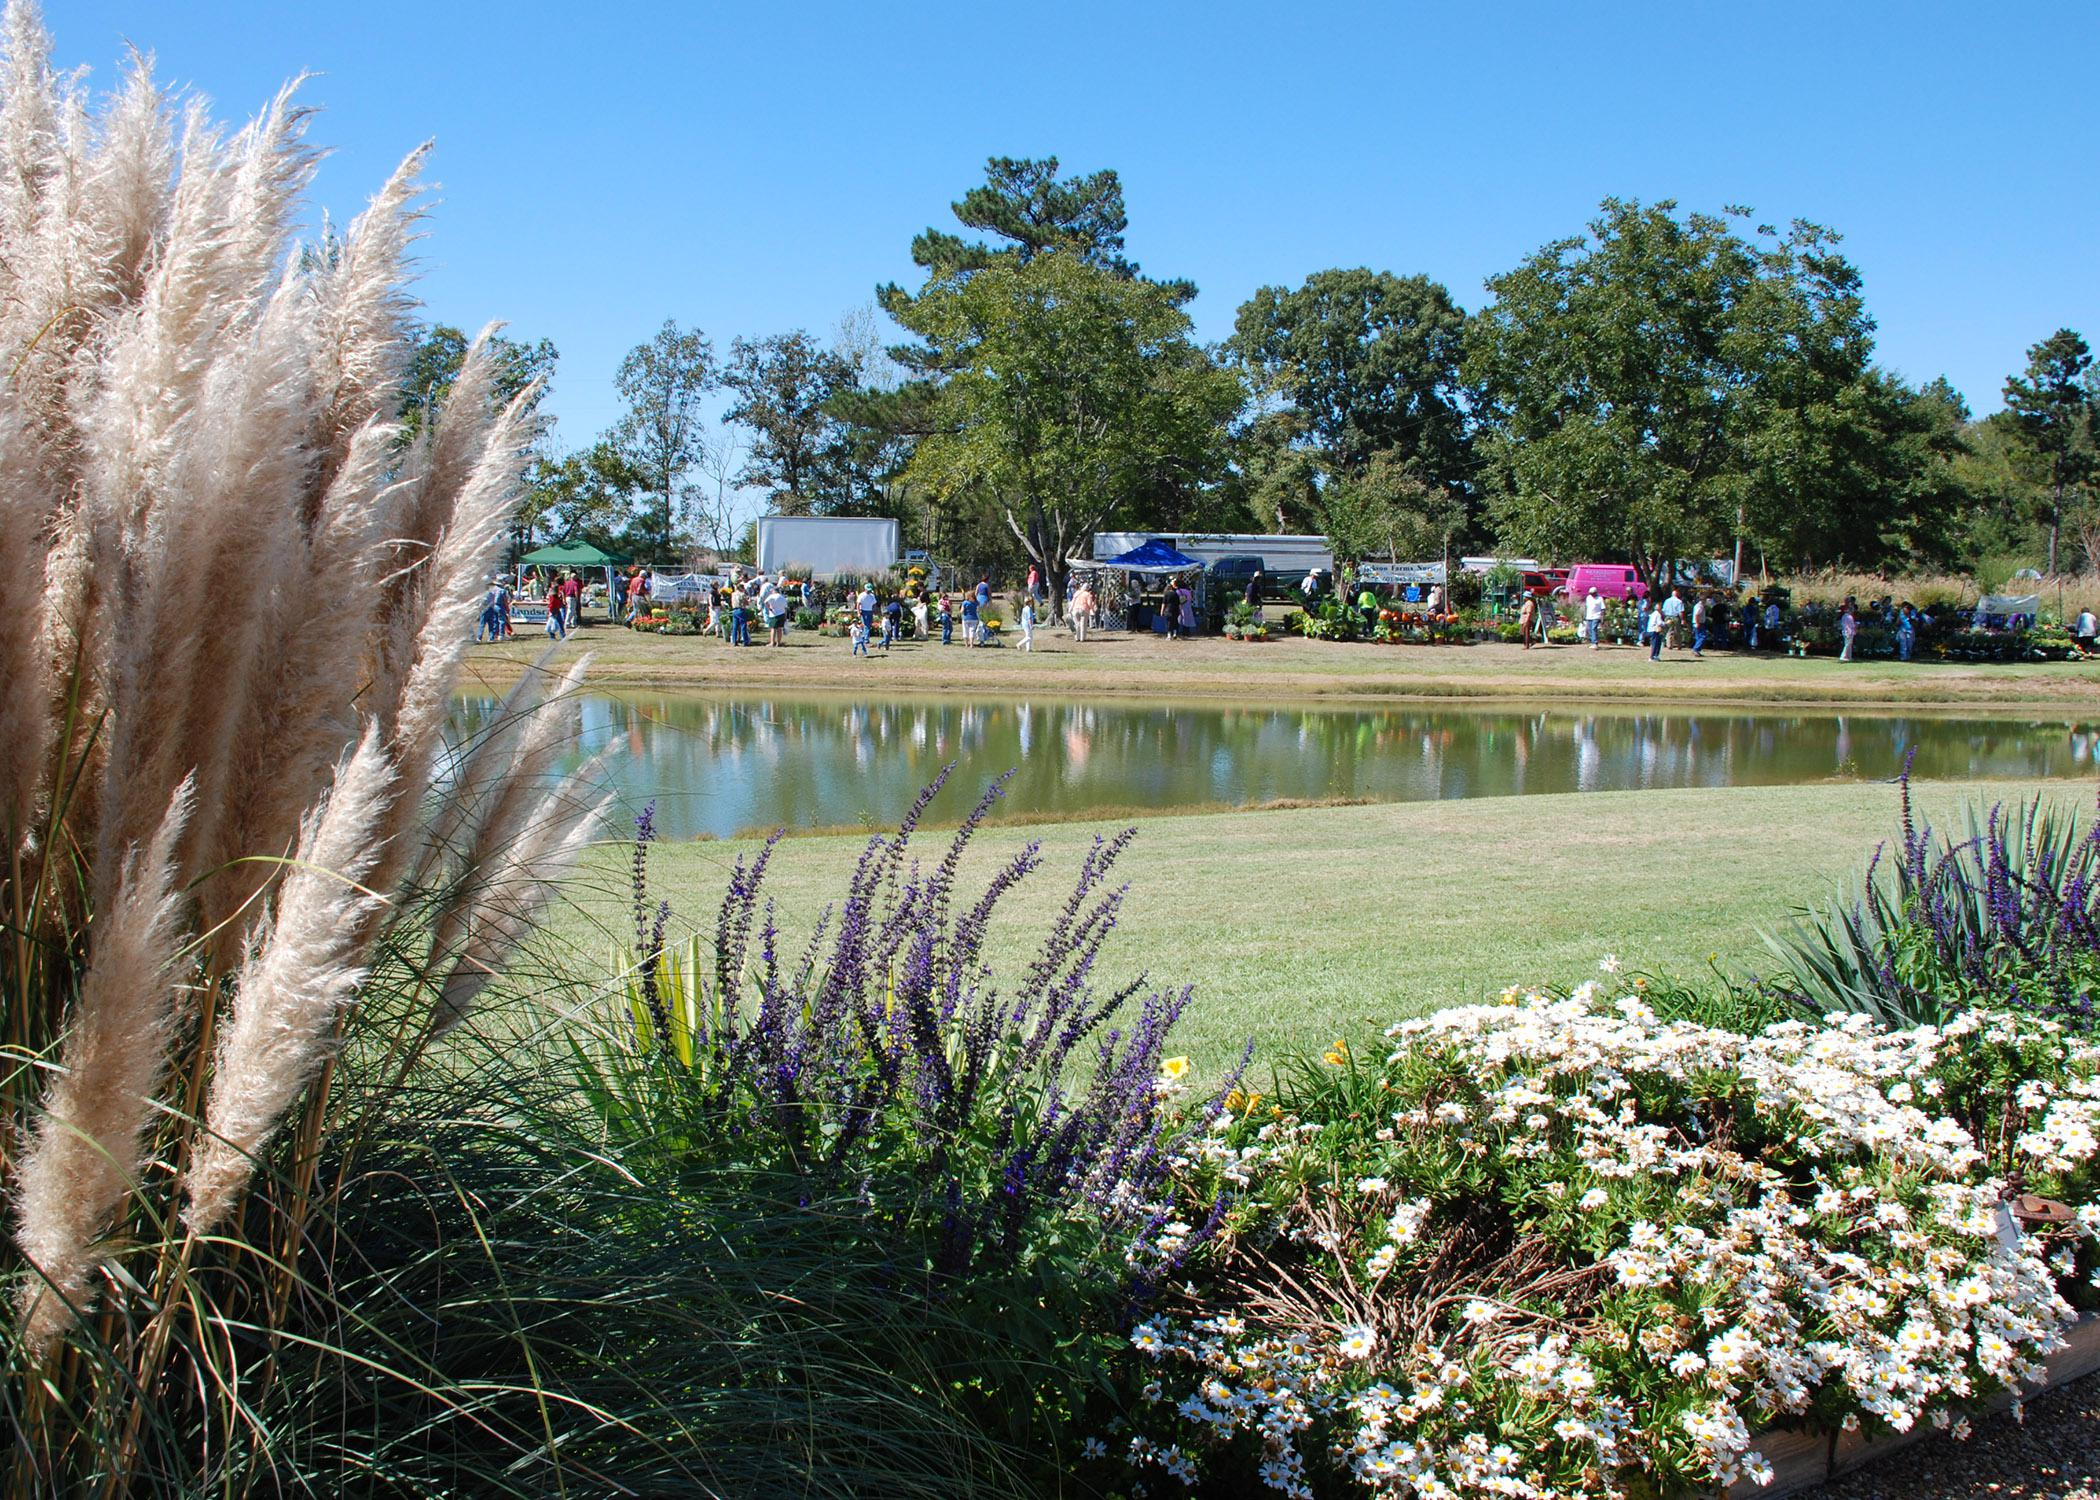 This 3-acre garden site at MSU's Truck Crops Branch Experiment Station in Crystal Springs will host the Fall Flower and Garden Fest Oct. 5 and 6. A complementary event is the Ornamental Horticulture Field Oct. 4 at the South Mississippi Branch Station in Poplarville. (Photo by MSU Ag Communications)